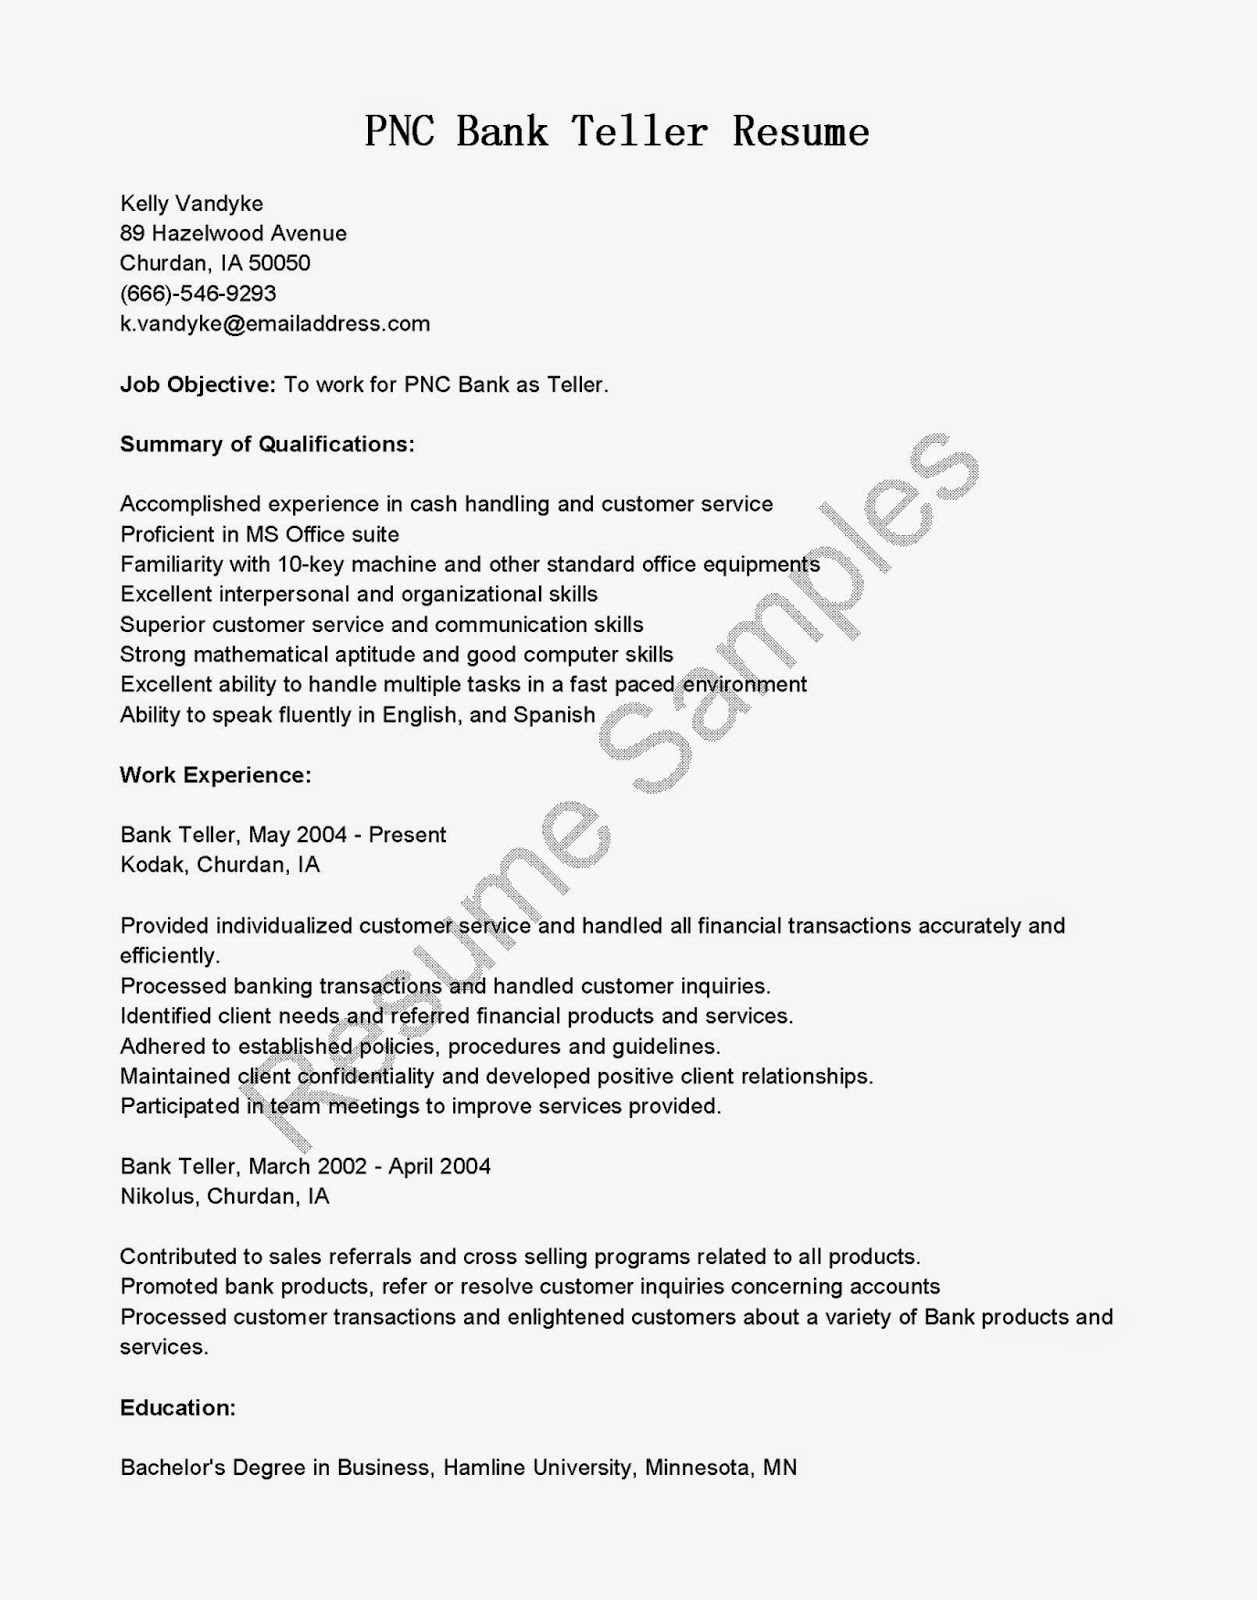 Resume For Teller Positions Facebookthesis Web Fc2 Com